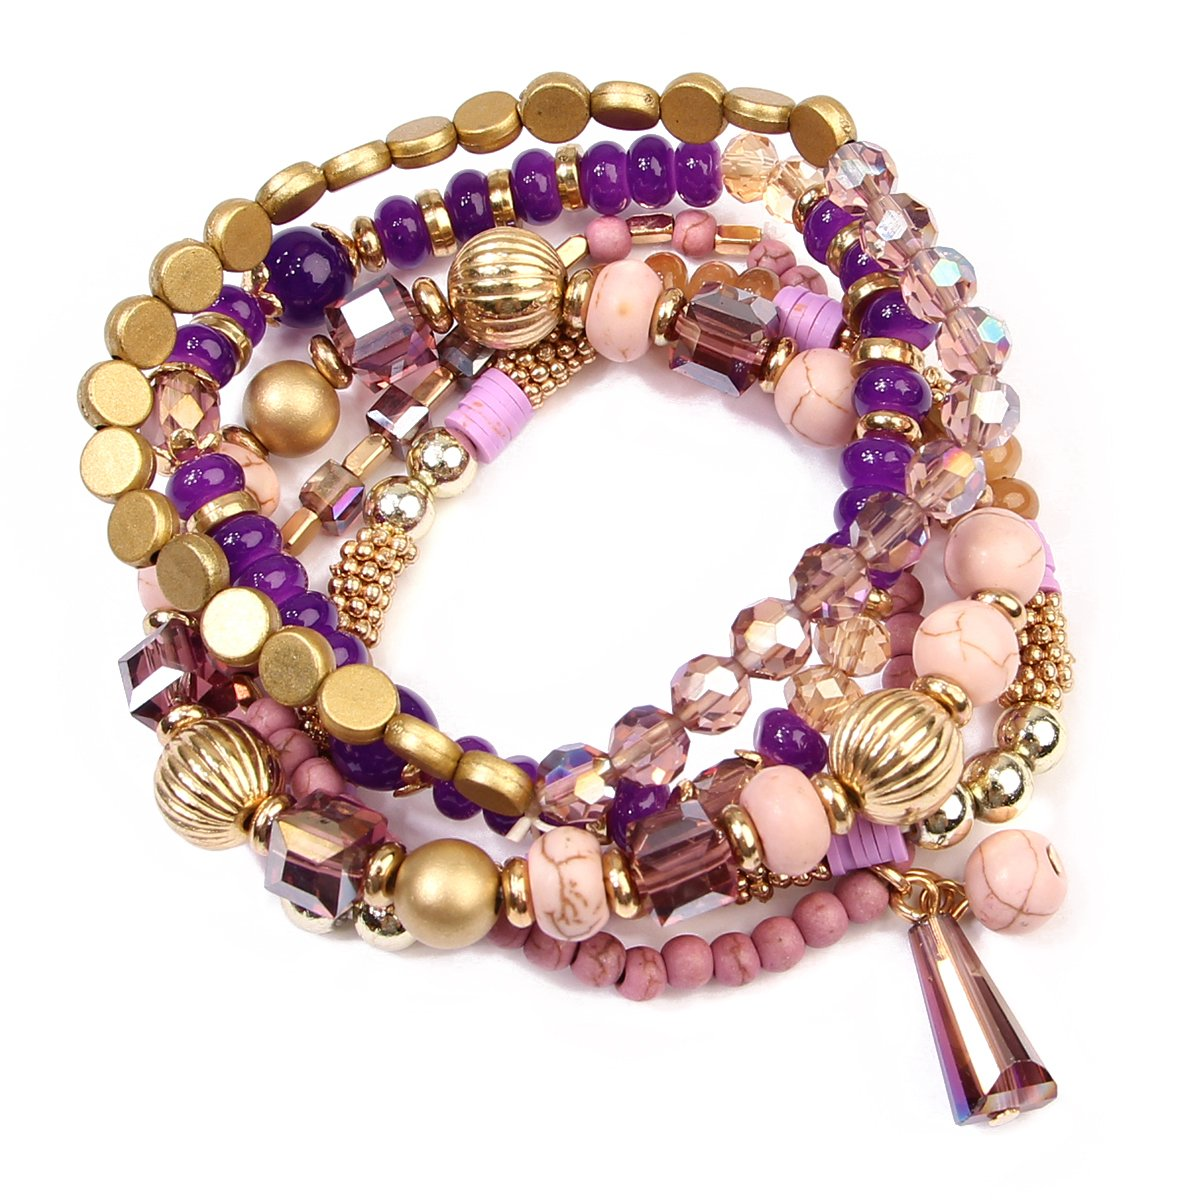 RIAH FASHION Bead Layering Multi Color Statement Bracelets - Stackable Beaded Strand Stretch Bangles (Purple)